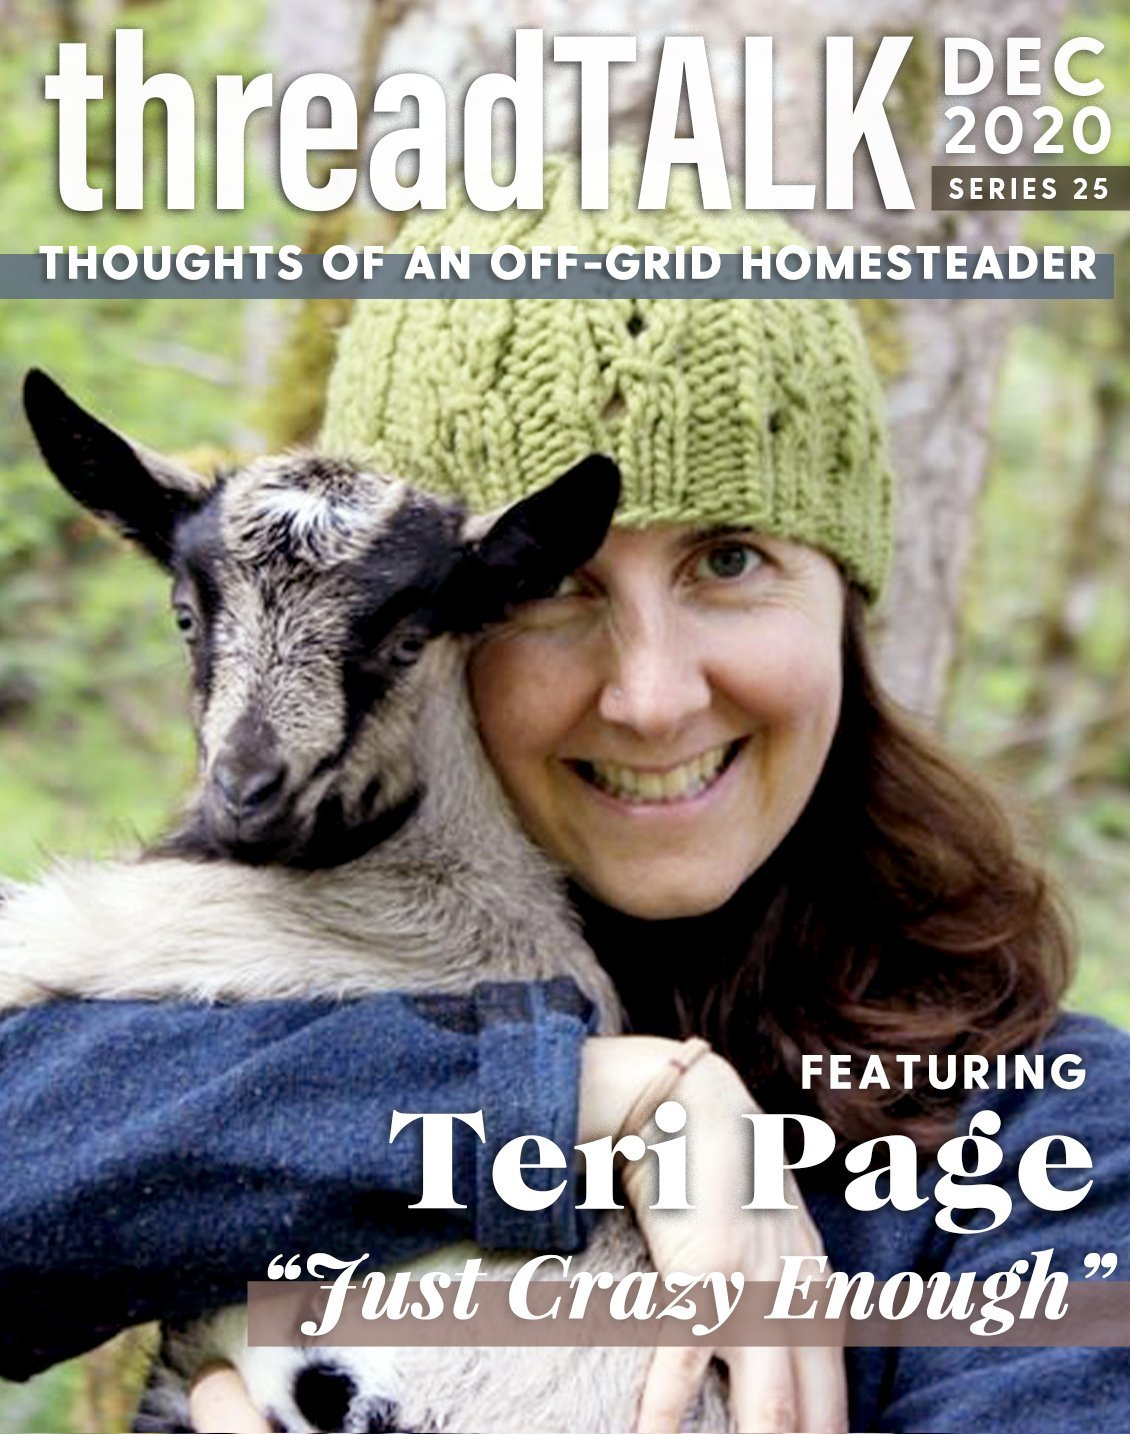 threadTALK Blog Series 25: Thoughts of an Off-Grid Homesteader with Teri Page | Stories You Can Wear by Thread Tank